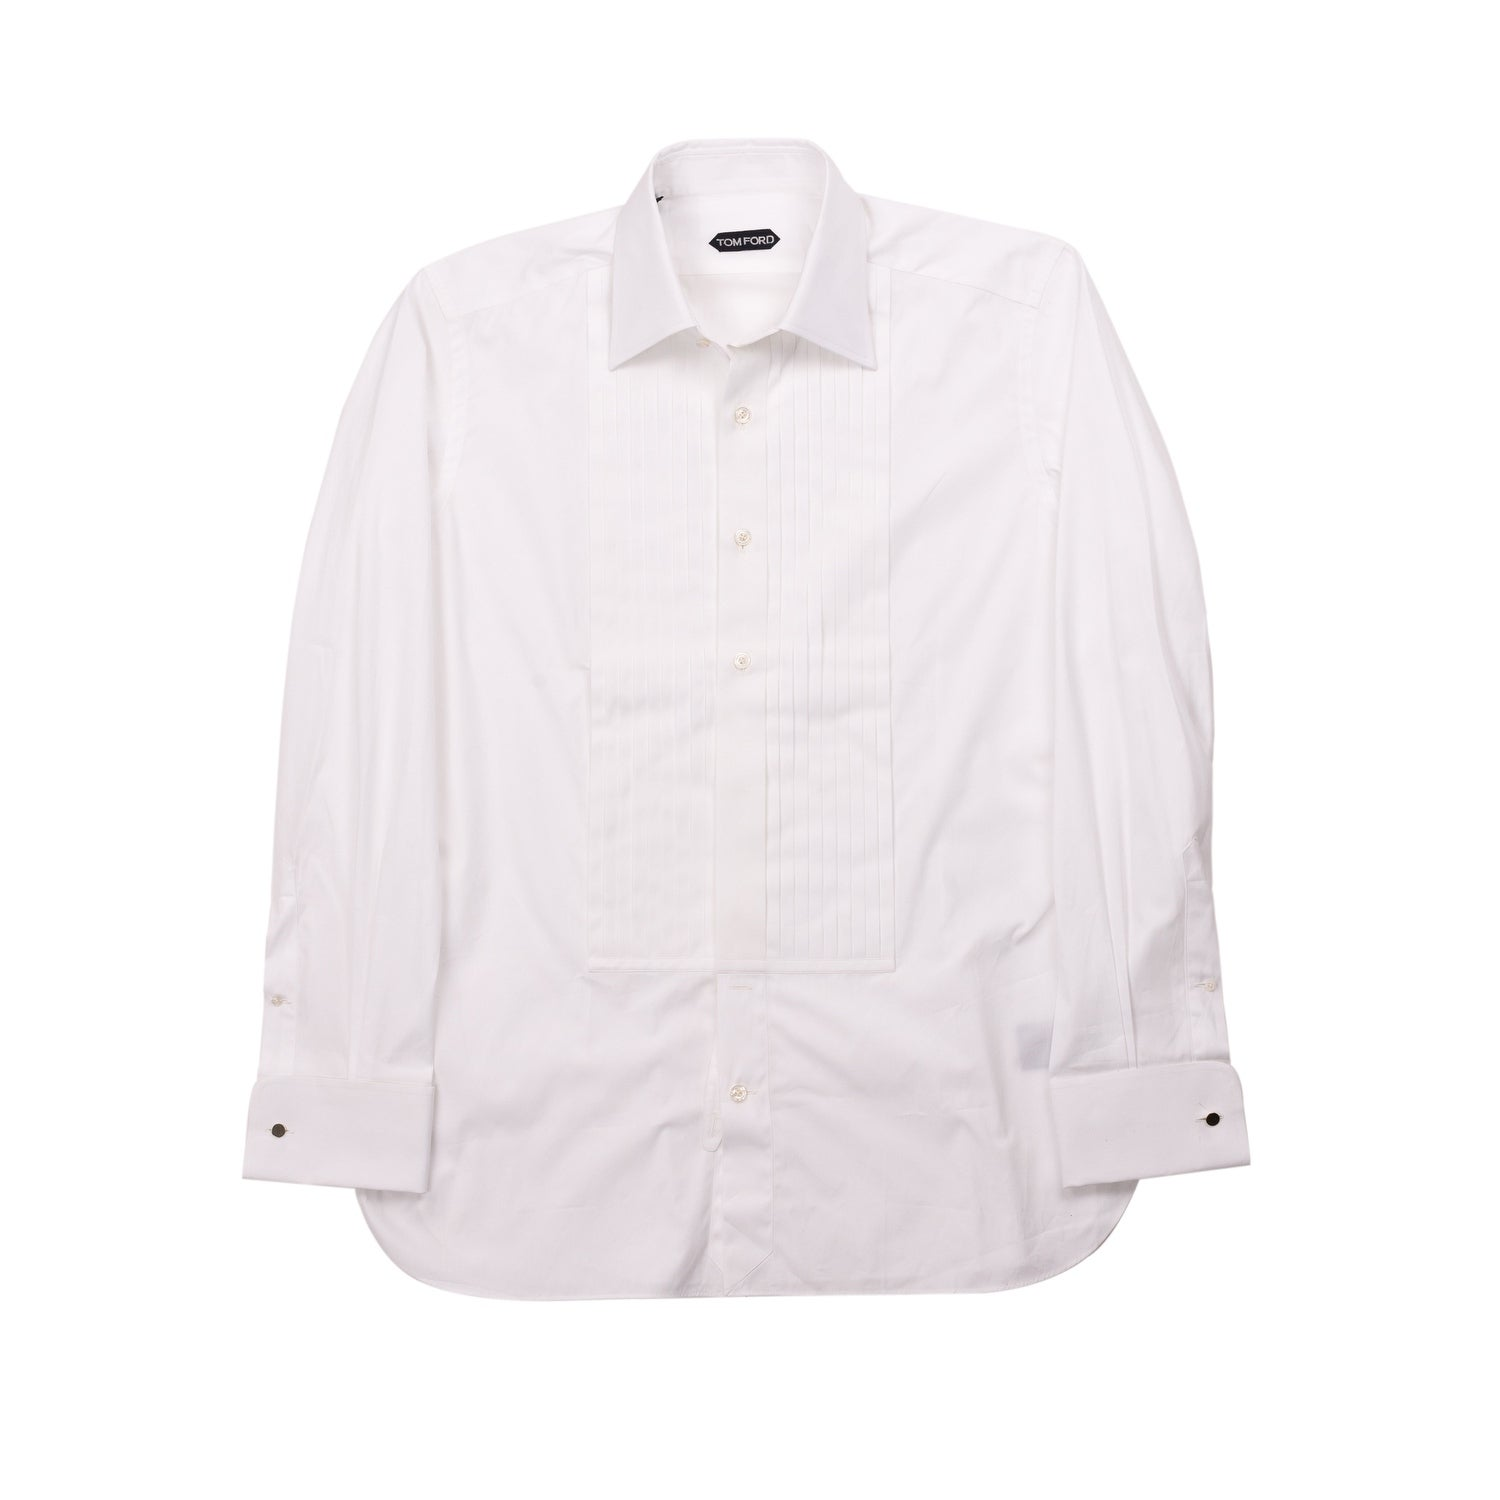 New Tom Ford Mens Pure Cotton White Pleated Chest Tuxedo Slim Fit